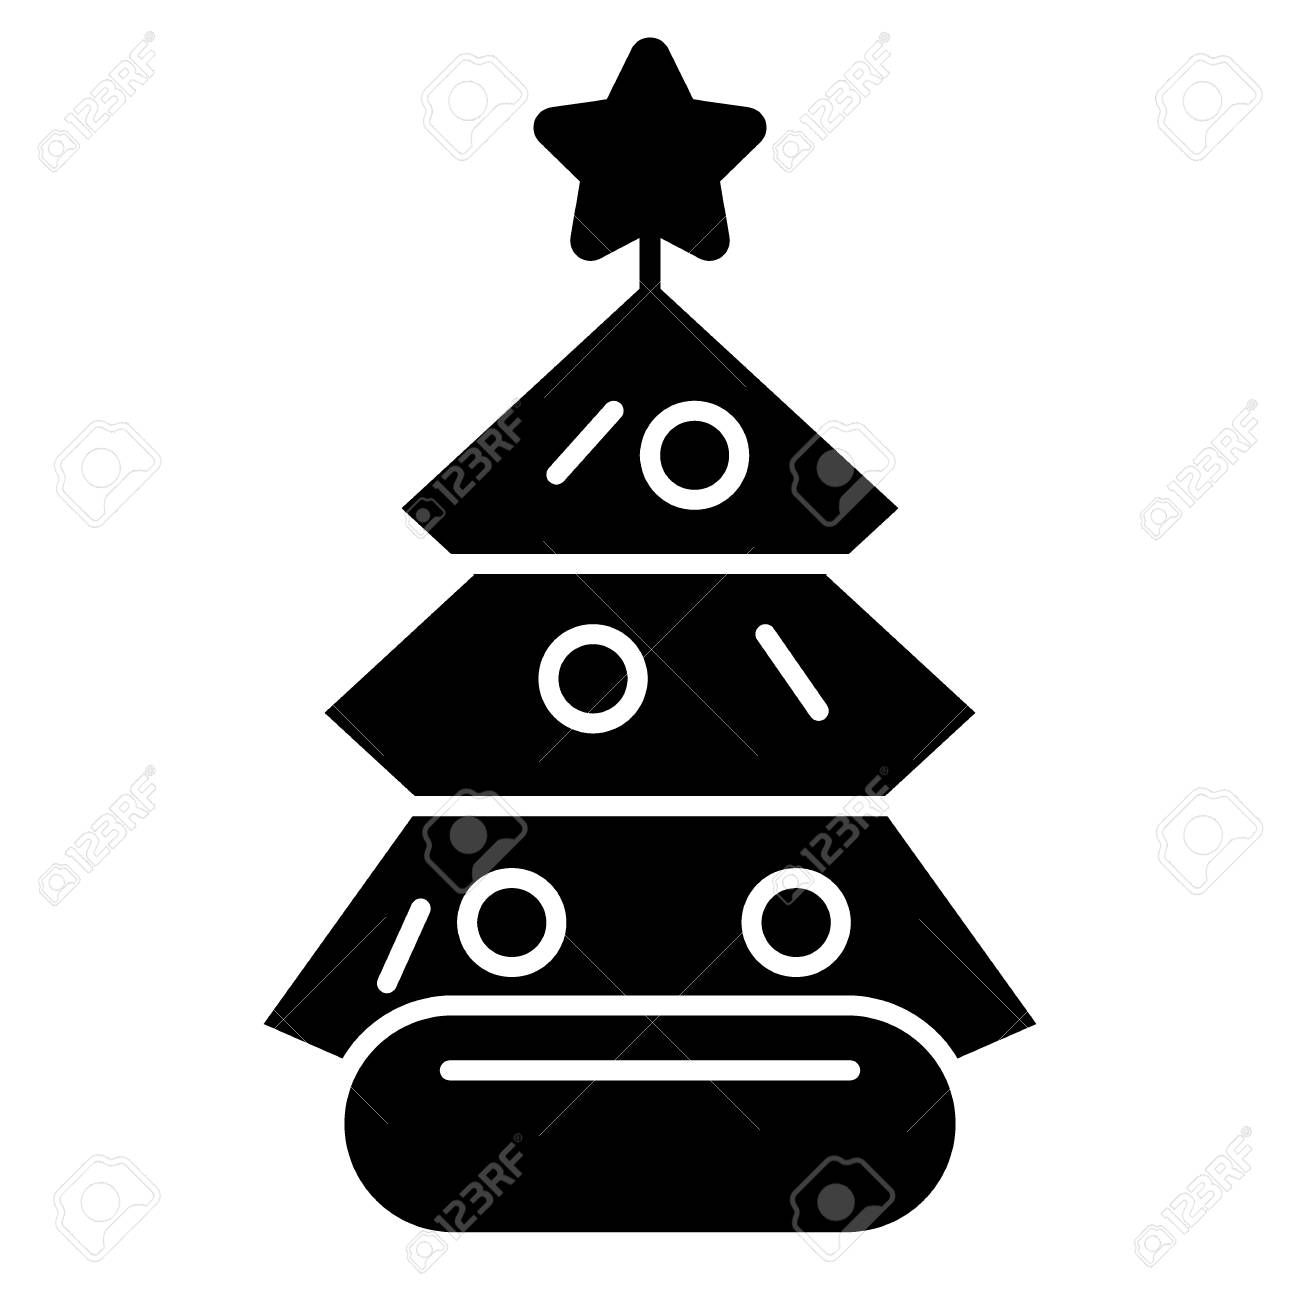 Dressed Christmass Tree Linear Icon Black Christmas Tree On